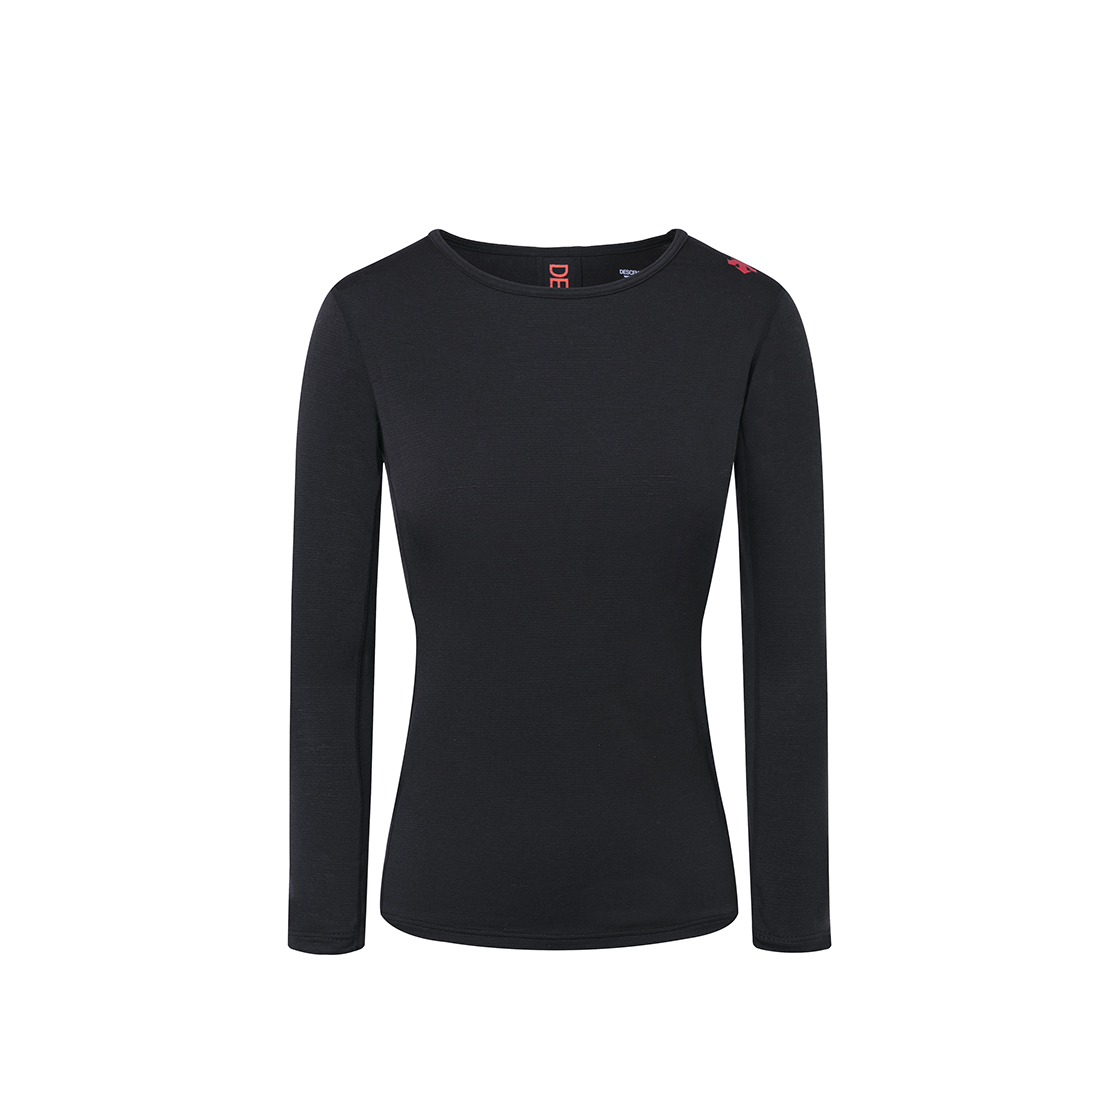 WOMEN'S BASE LAYER TOP